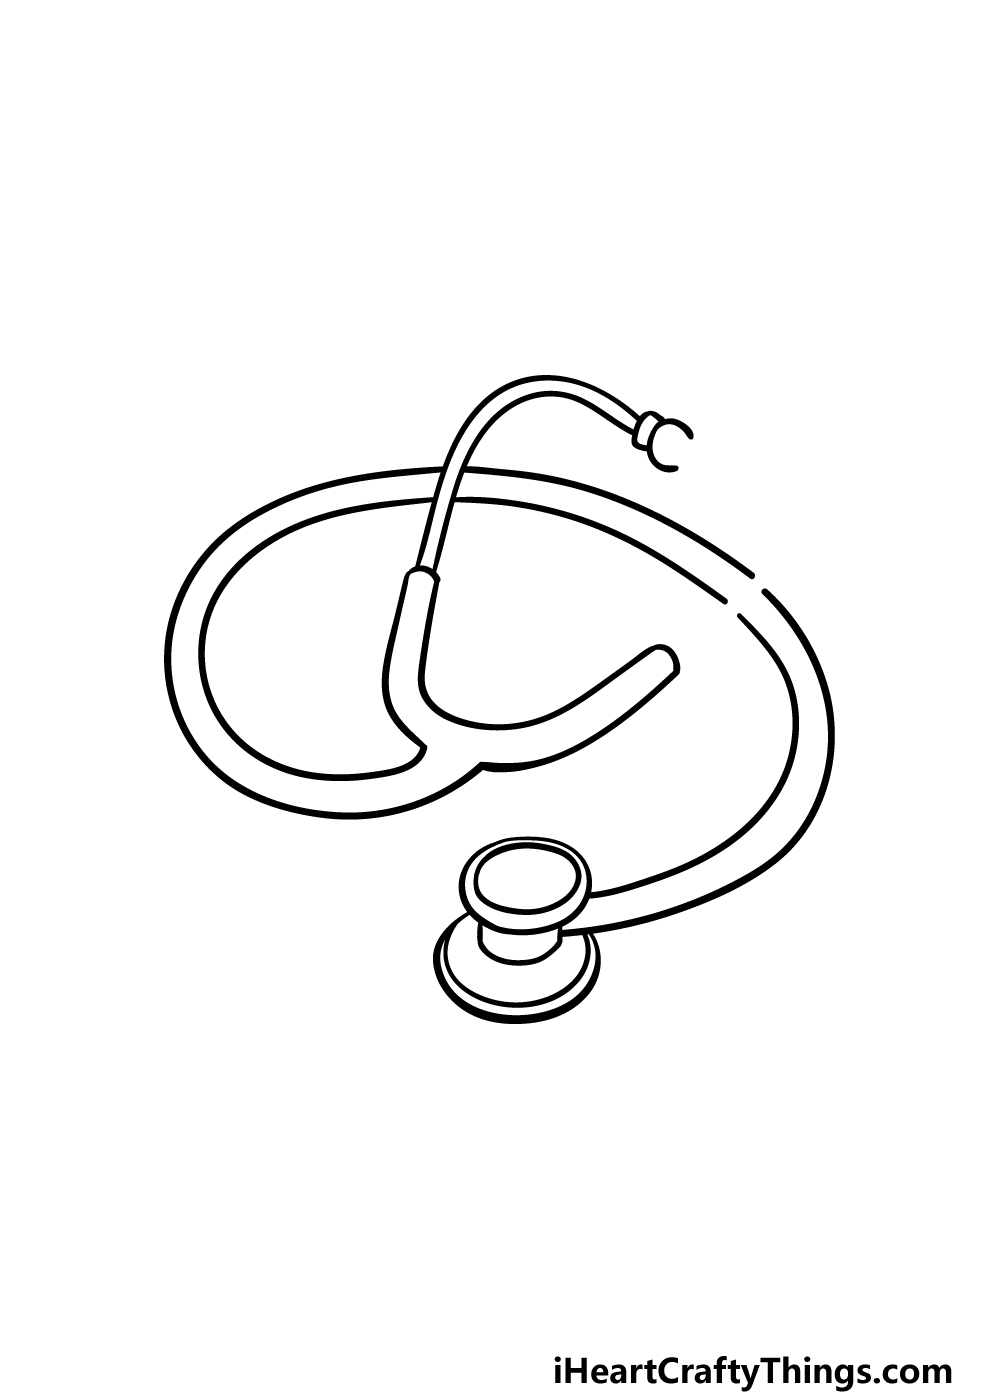 drawing stethoscope step 4